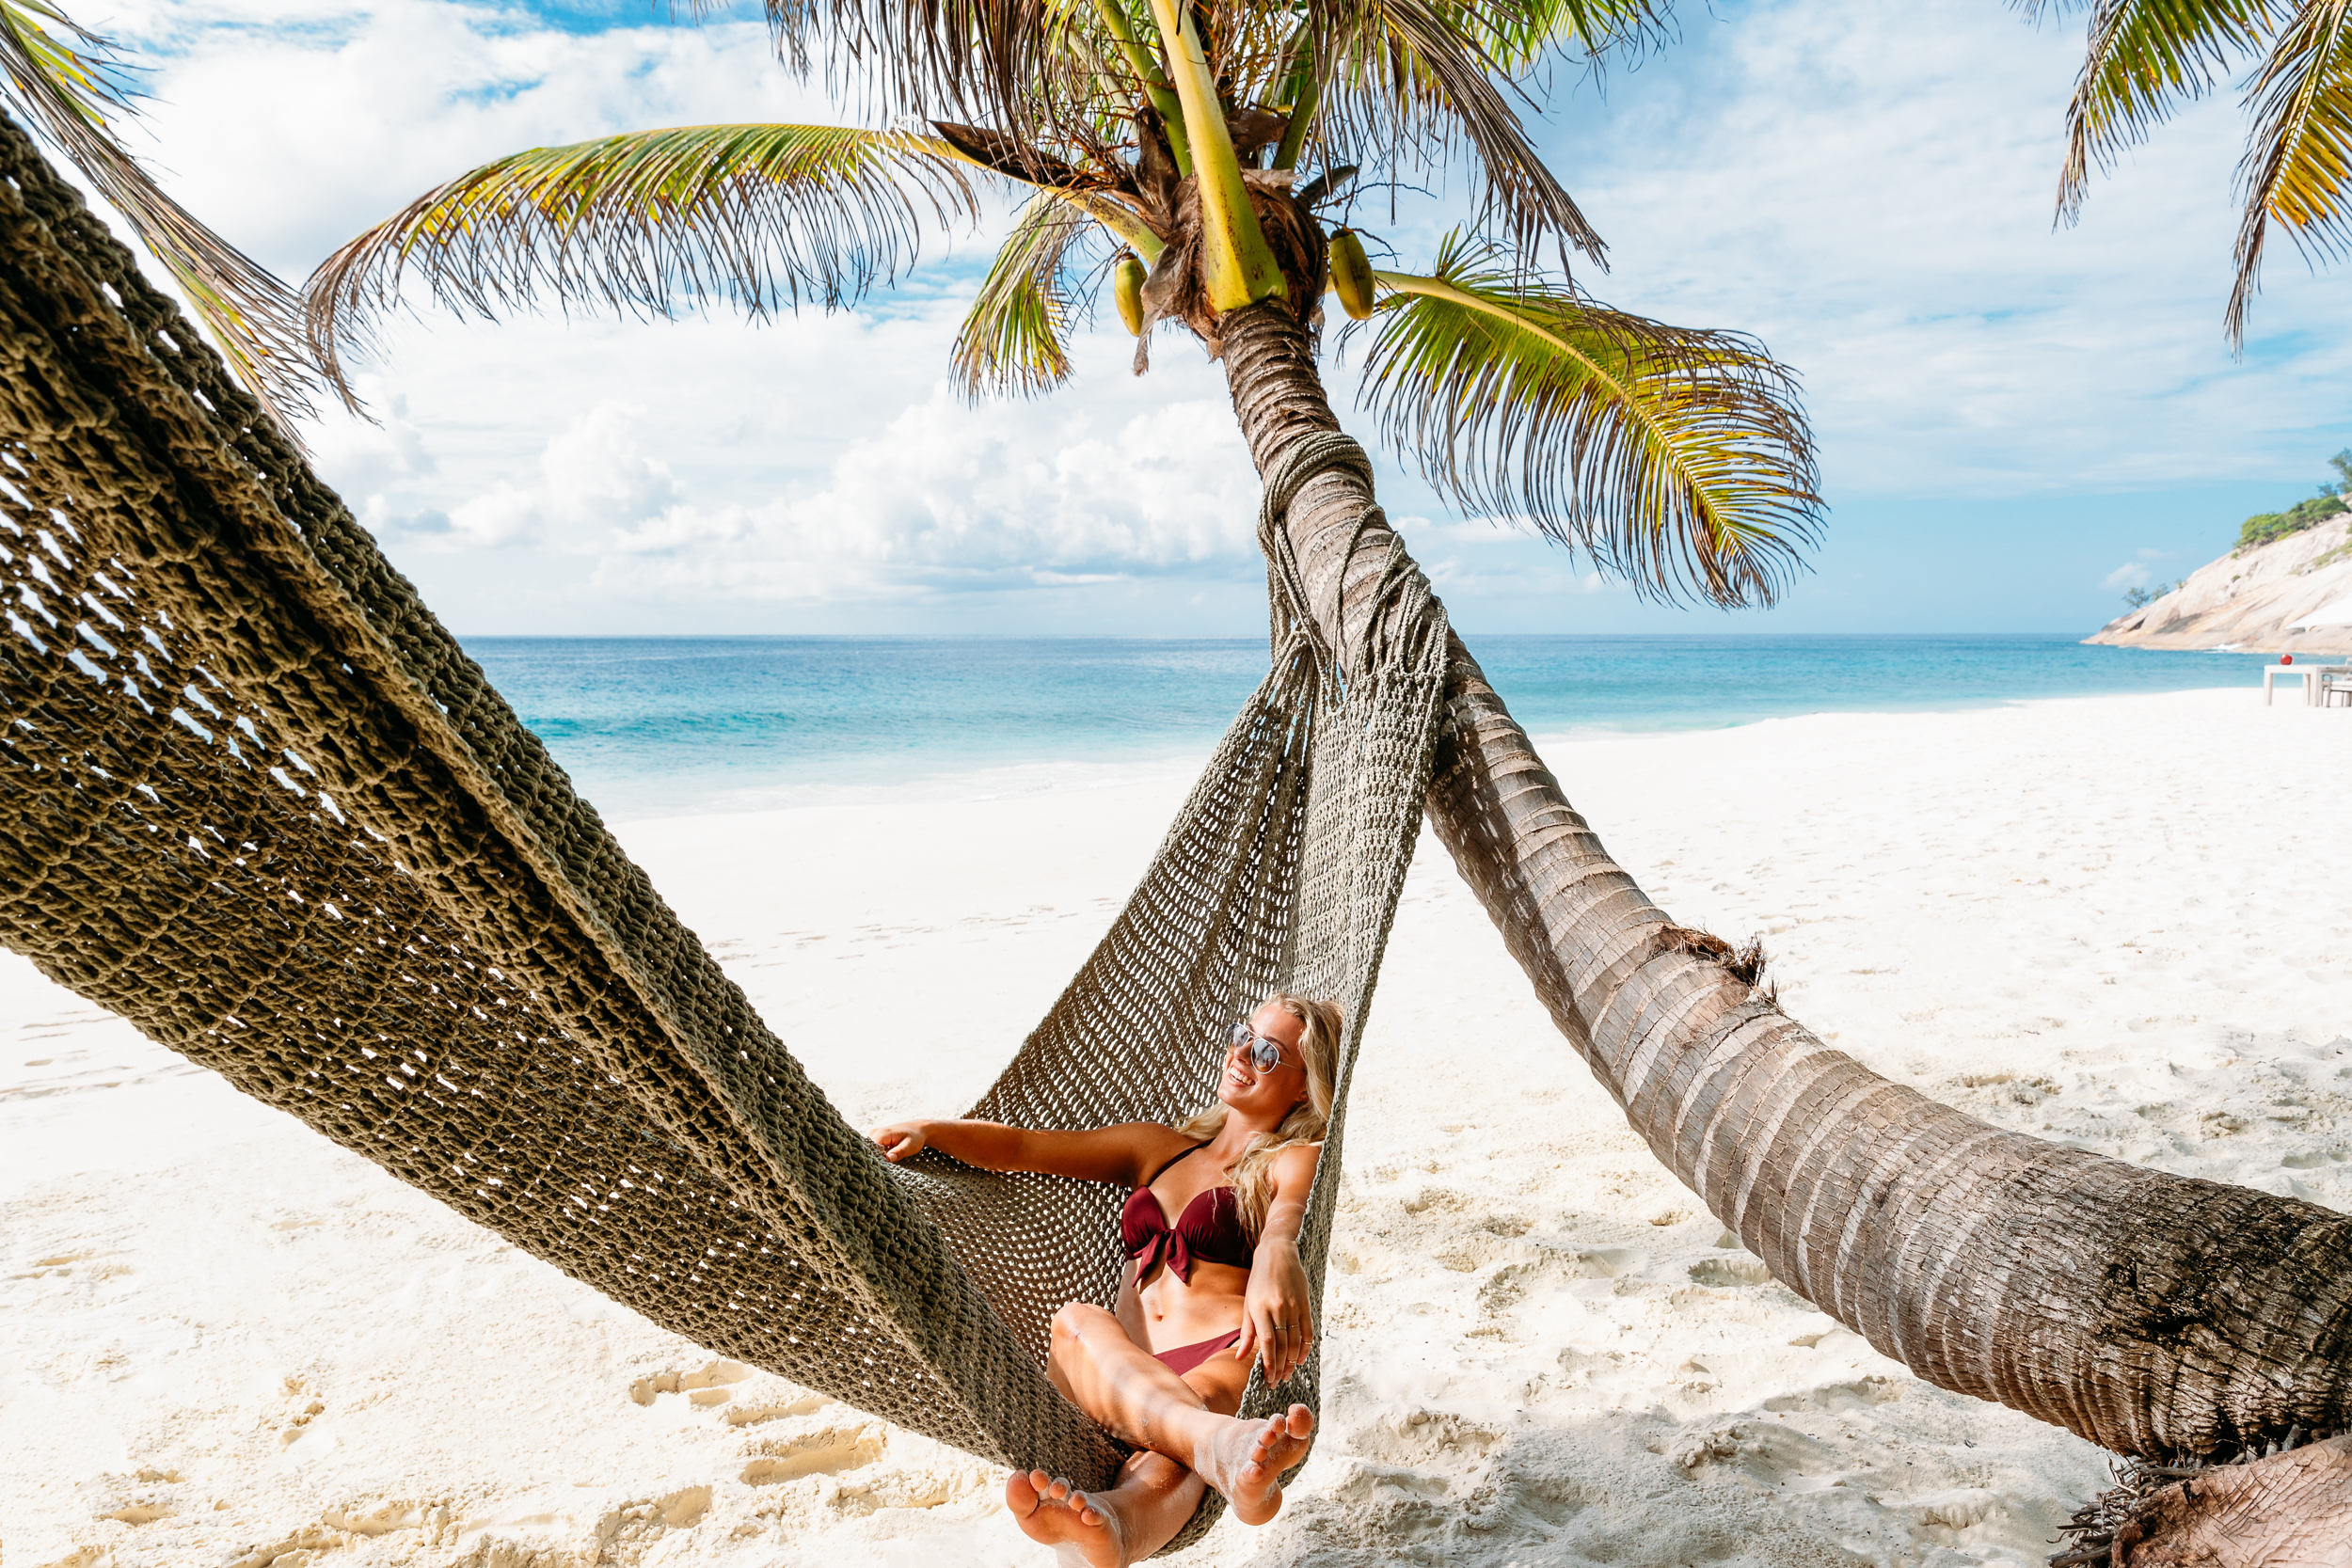 North Island - Hammock at West Beach - 2500px.jpg